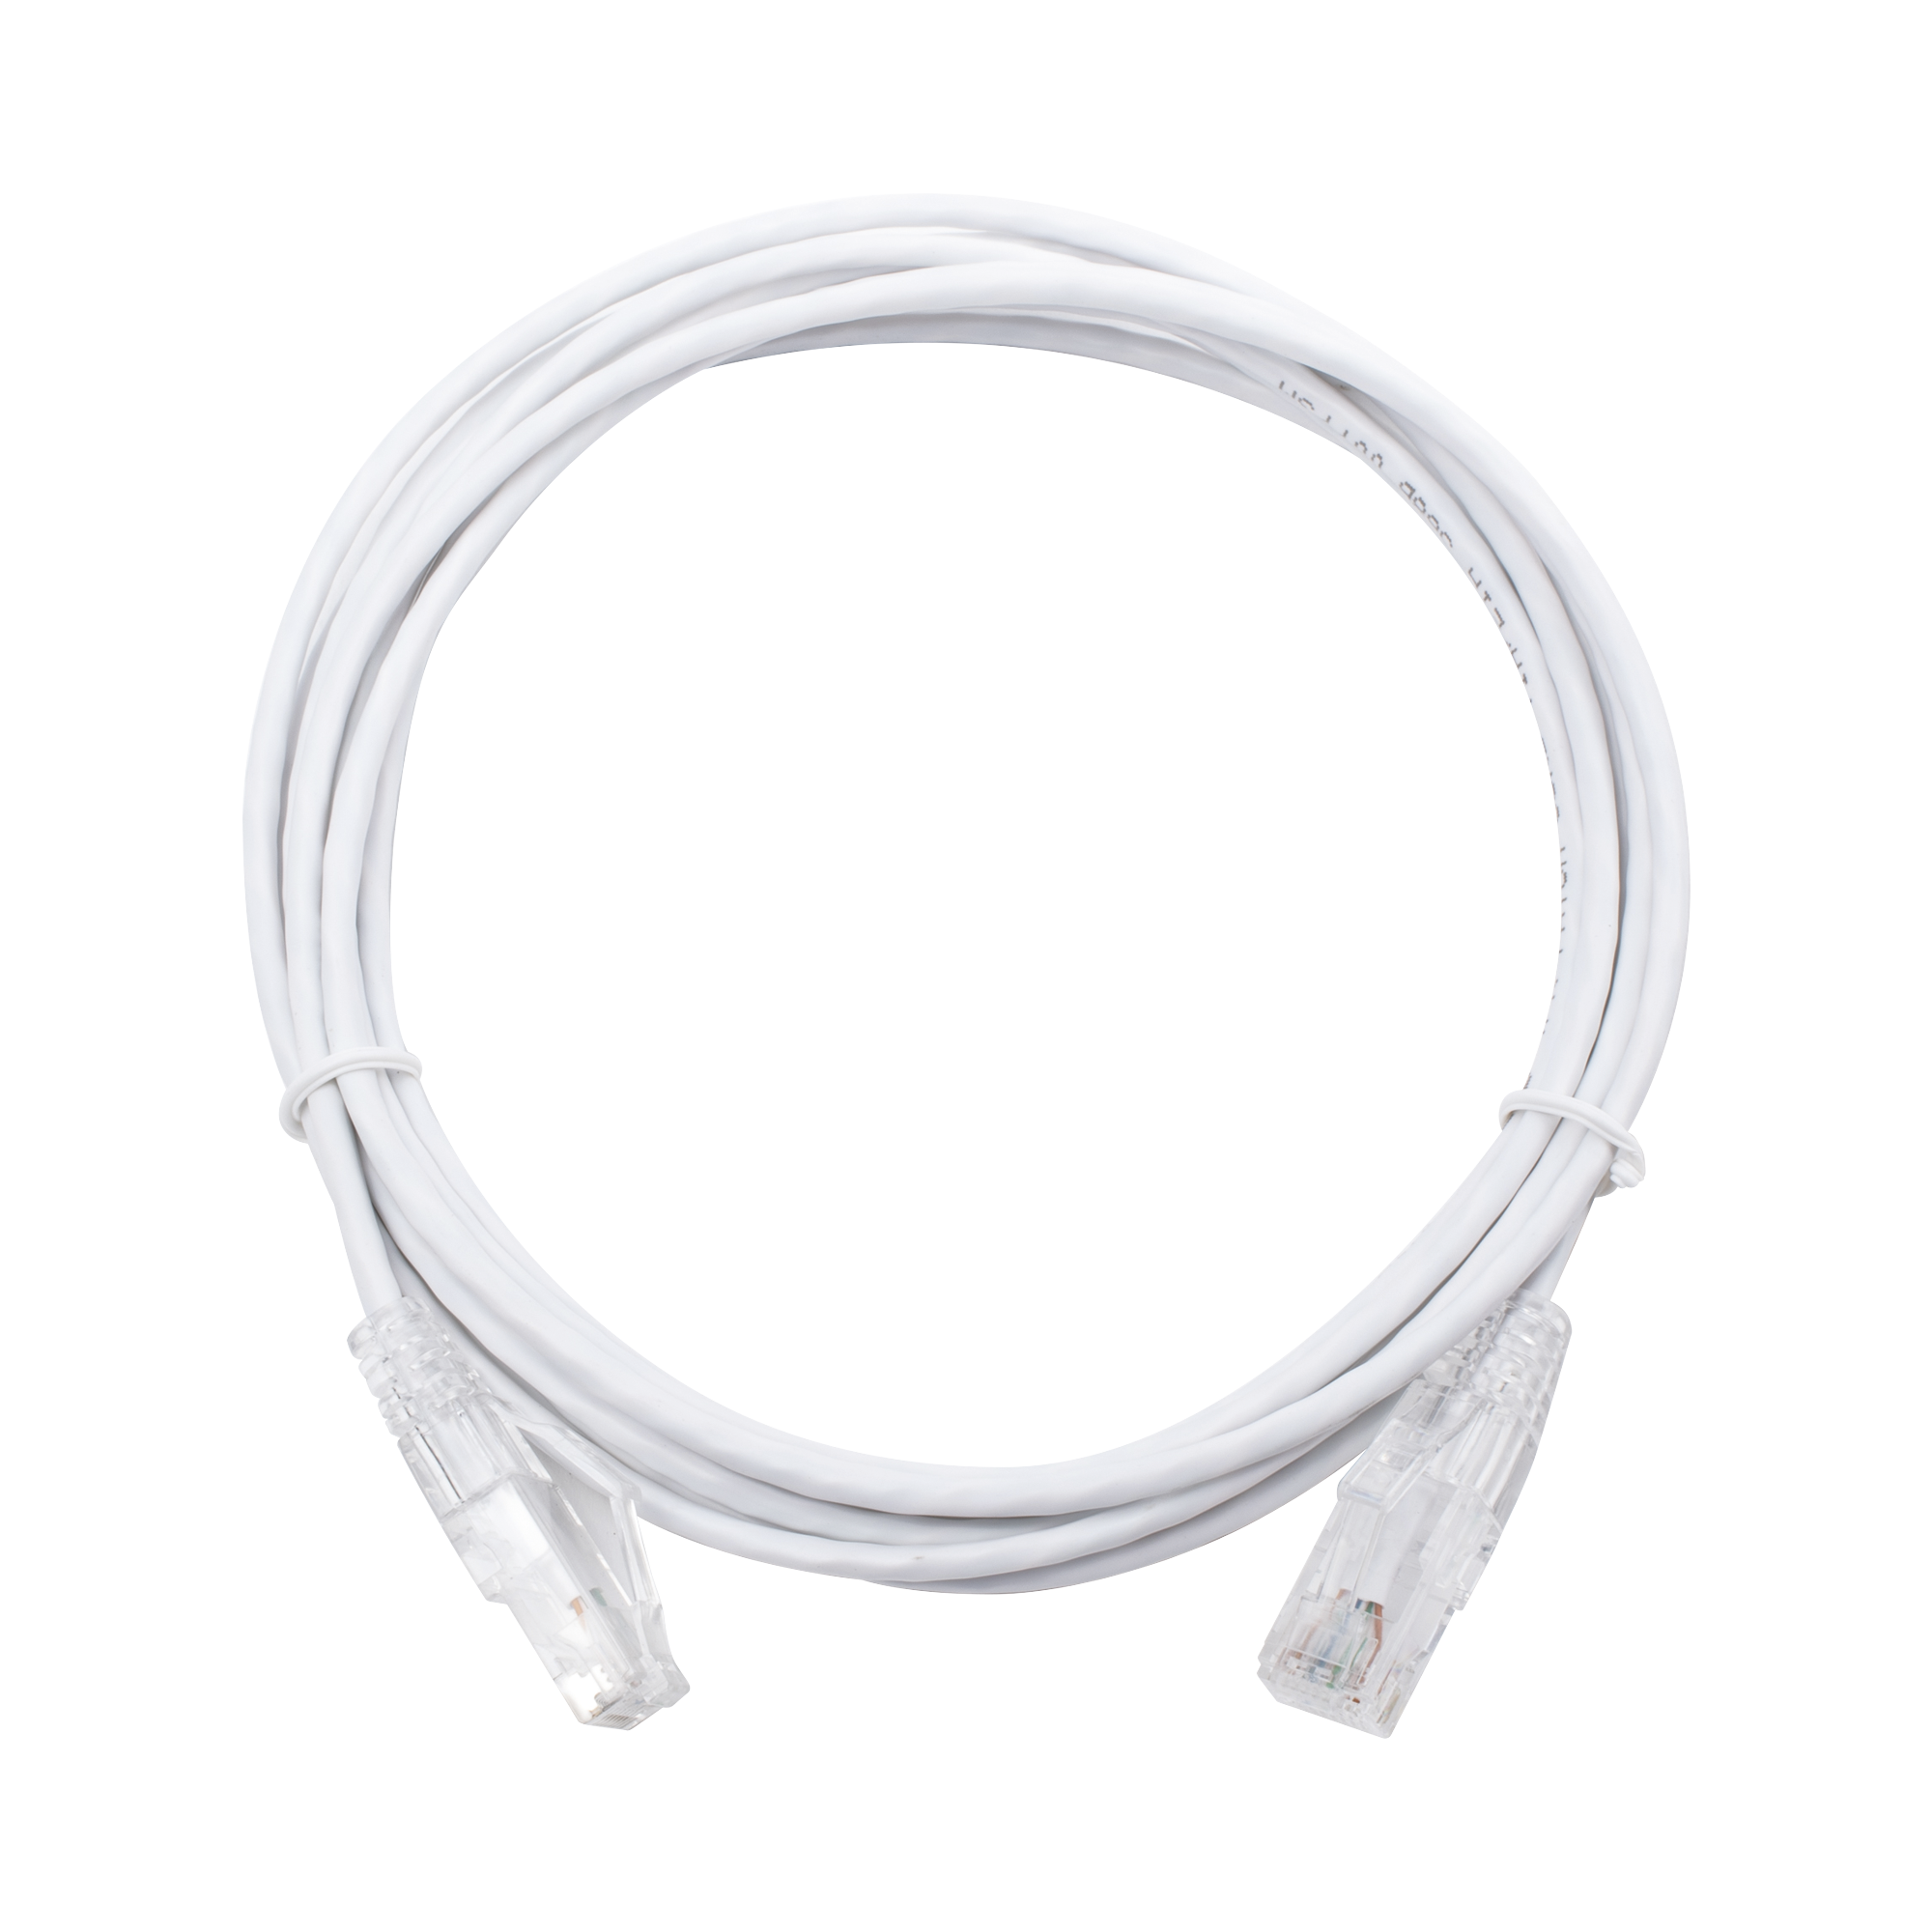 Cable de Parcheo Slim UTP Cat6 - 3 m Blanco Diámetro Reducido (28 AWG)